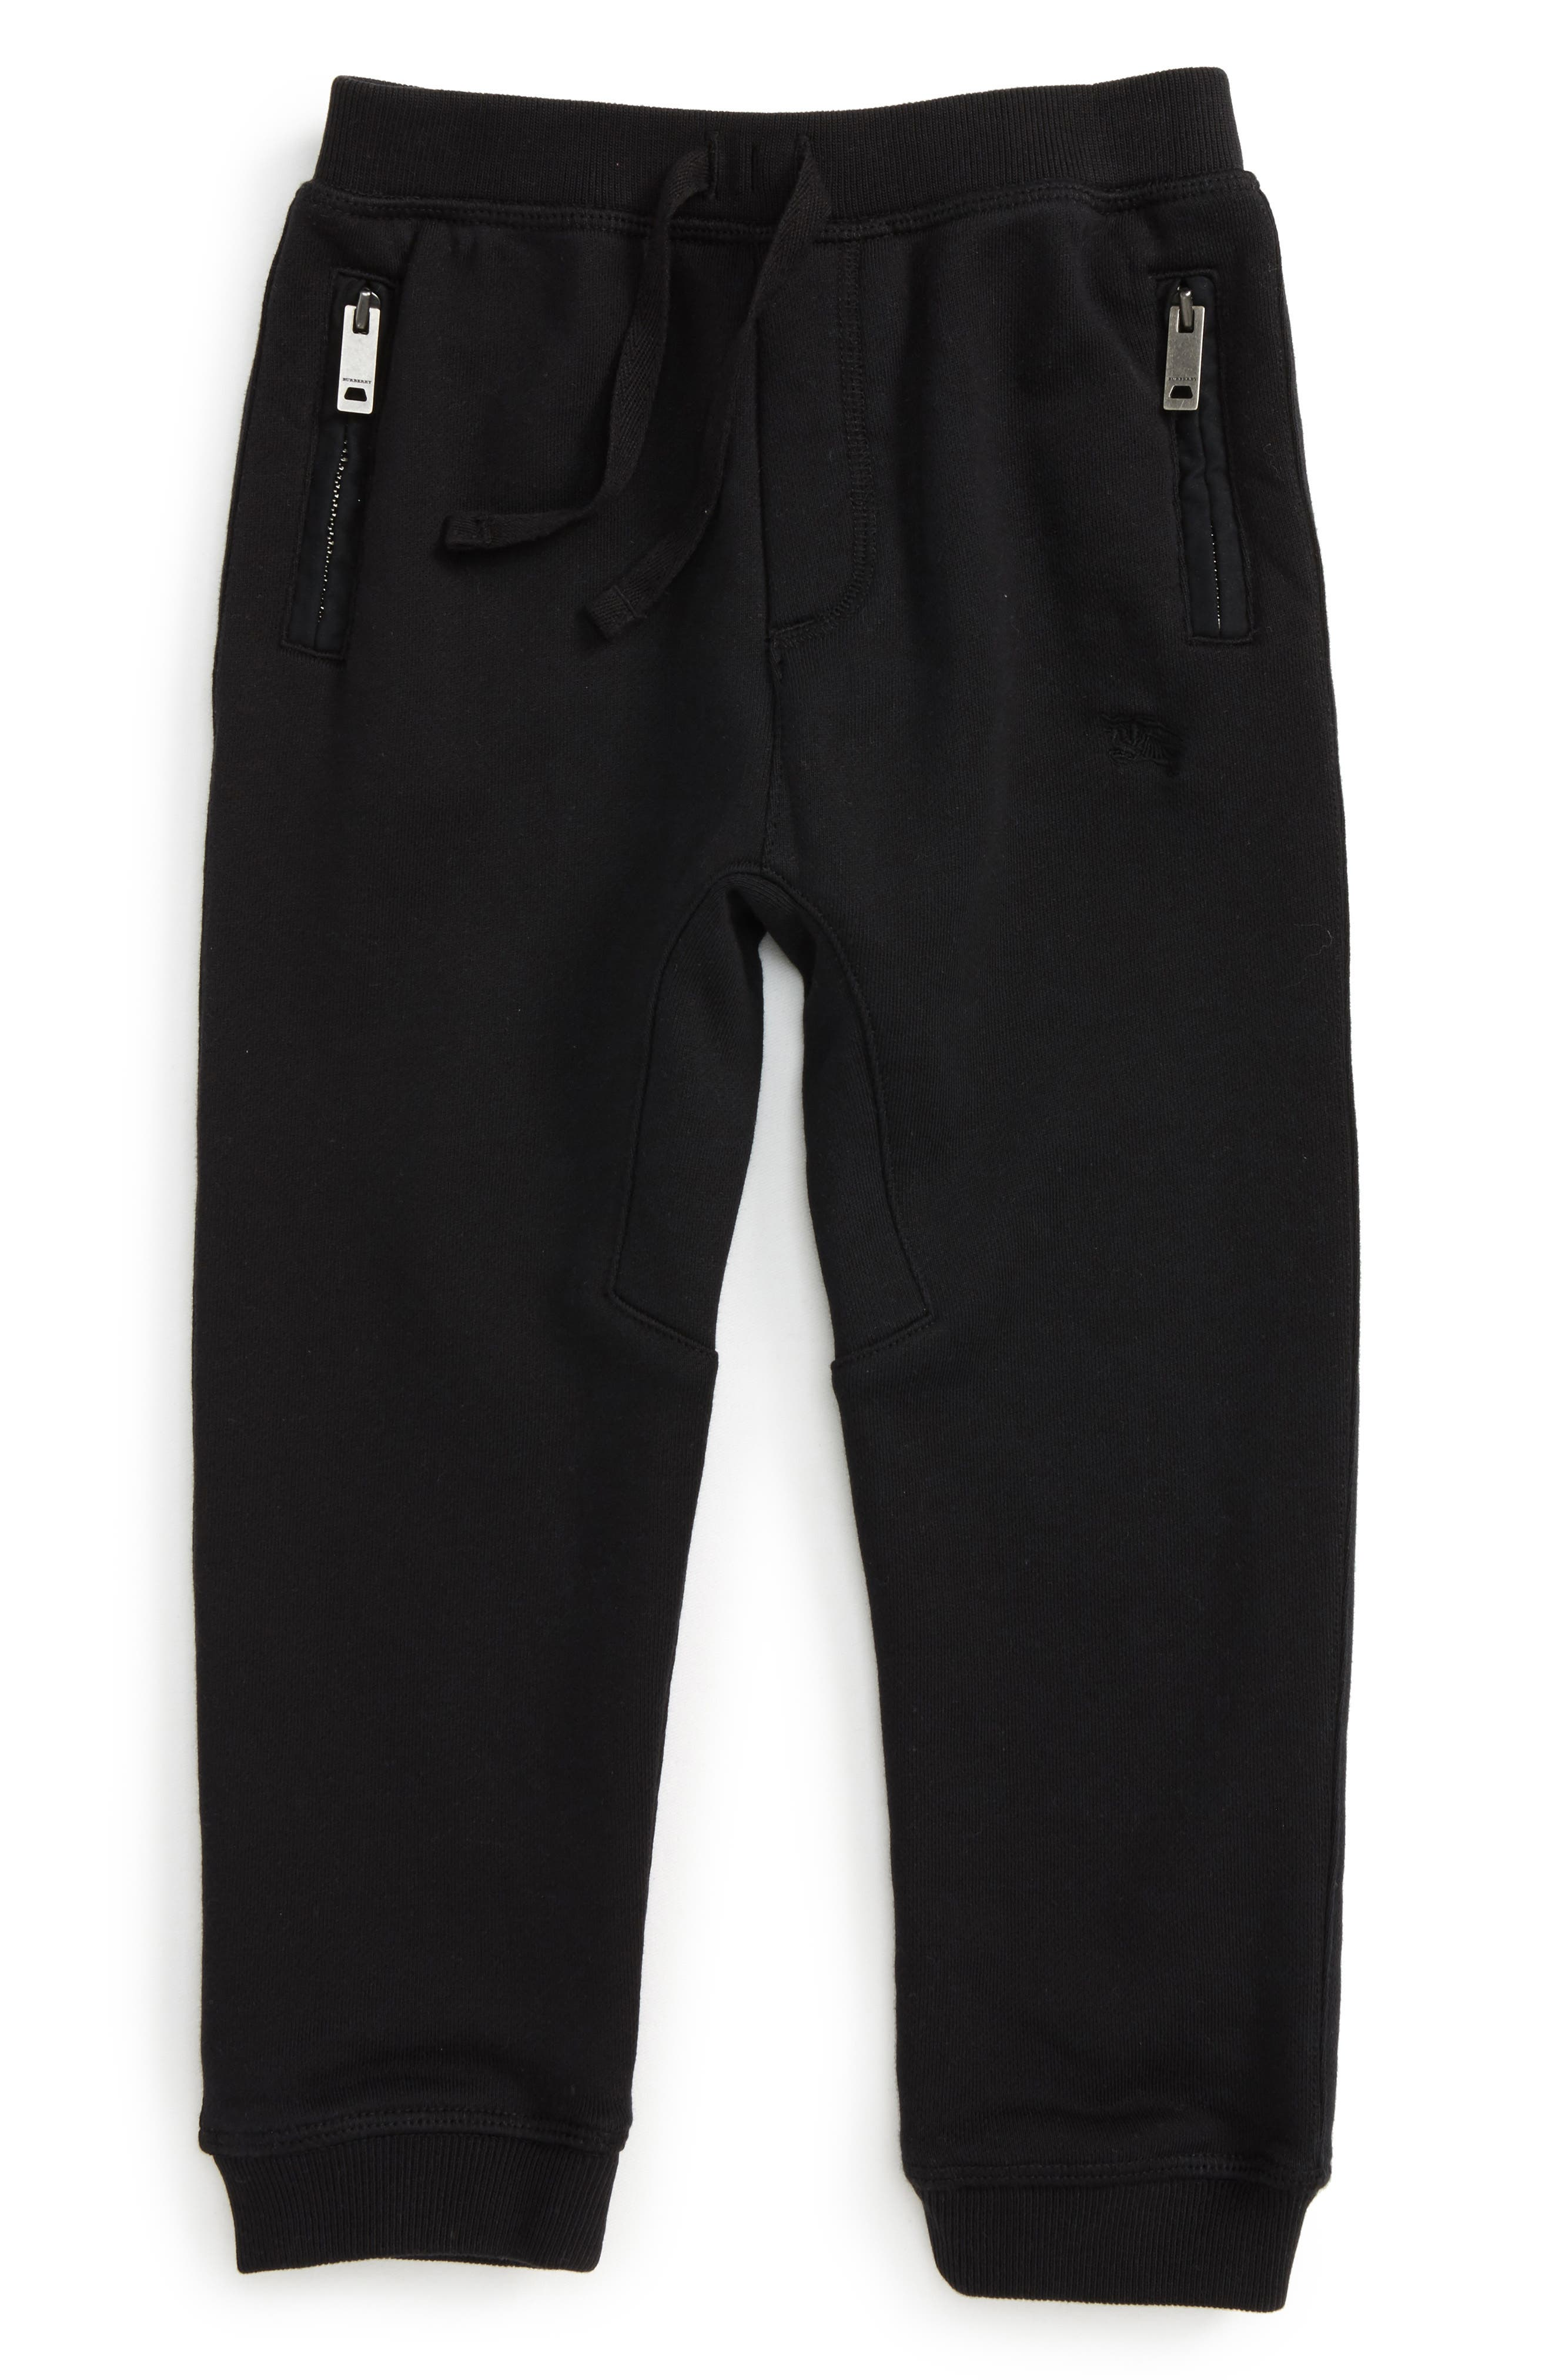 'Mini Phill' Sweatpants,                             Main thumbnail 1, color,                             Black